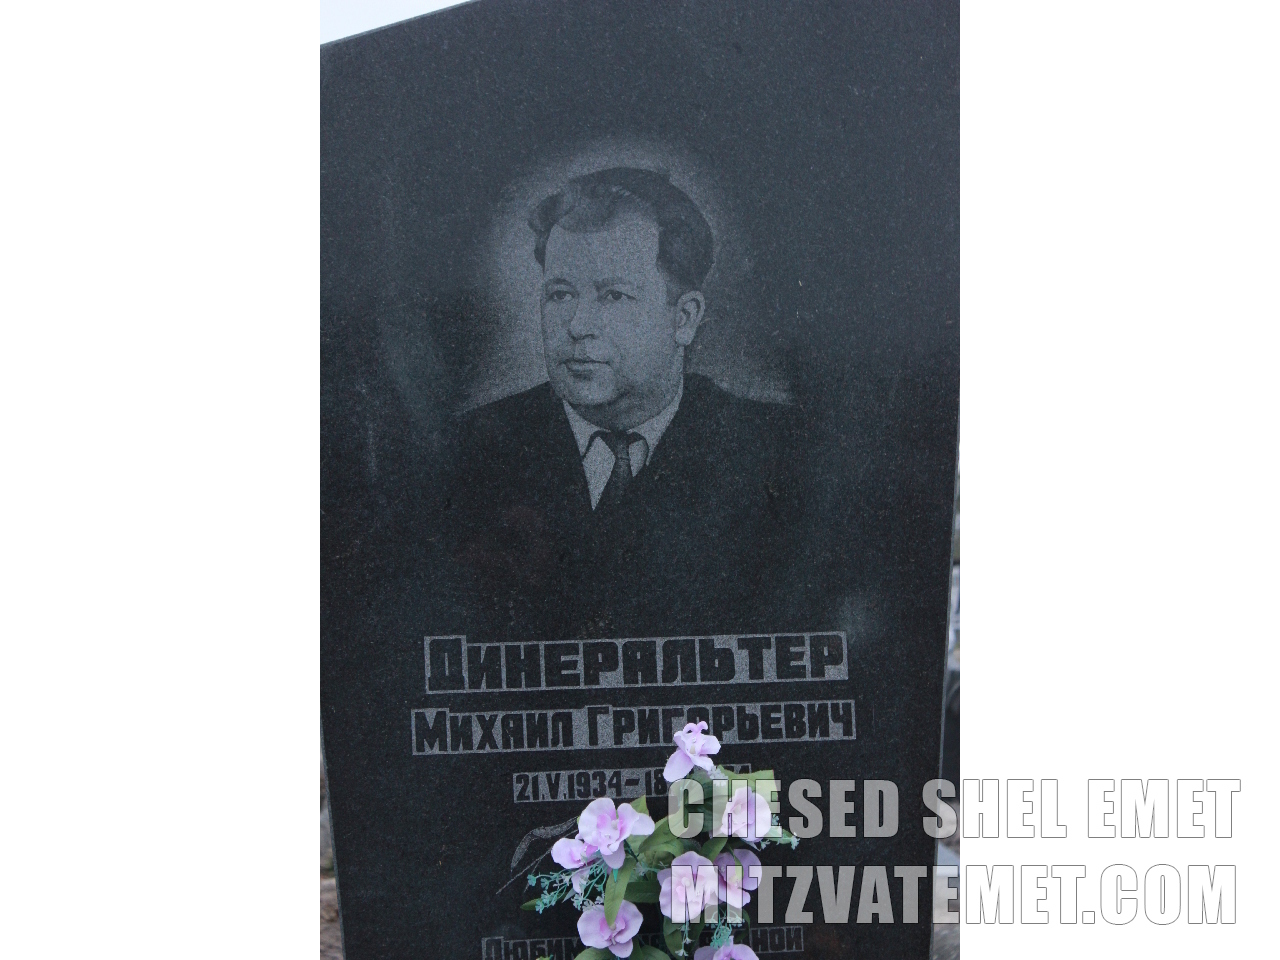 Dineralter Mikhail Grigoryevich 1934-0000